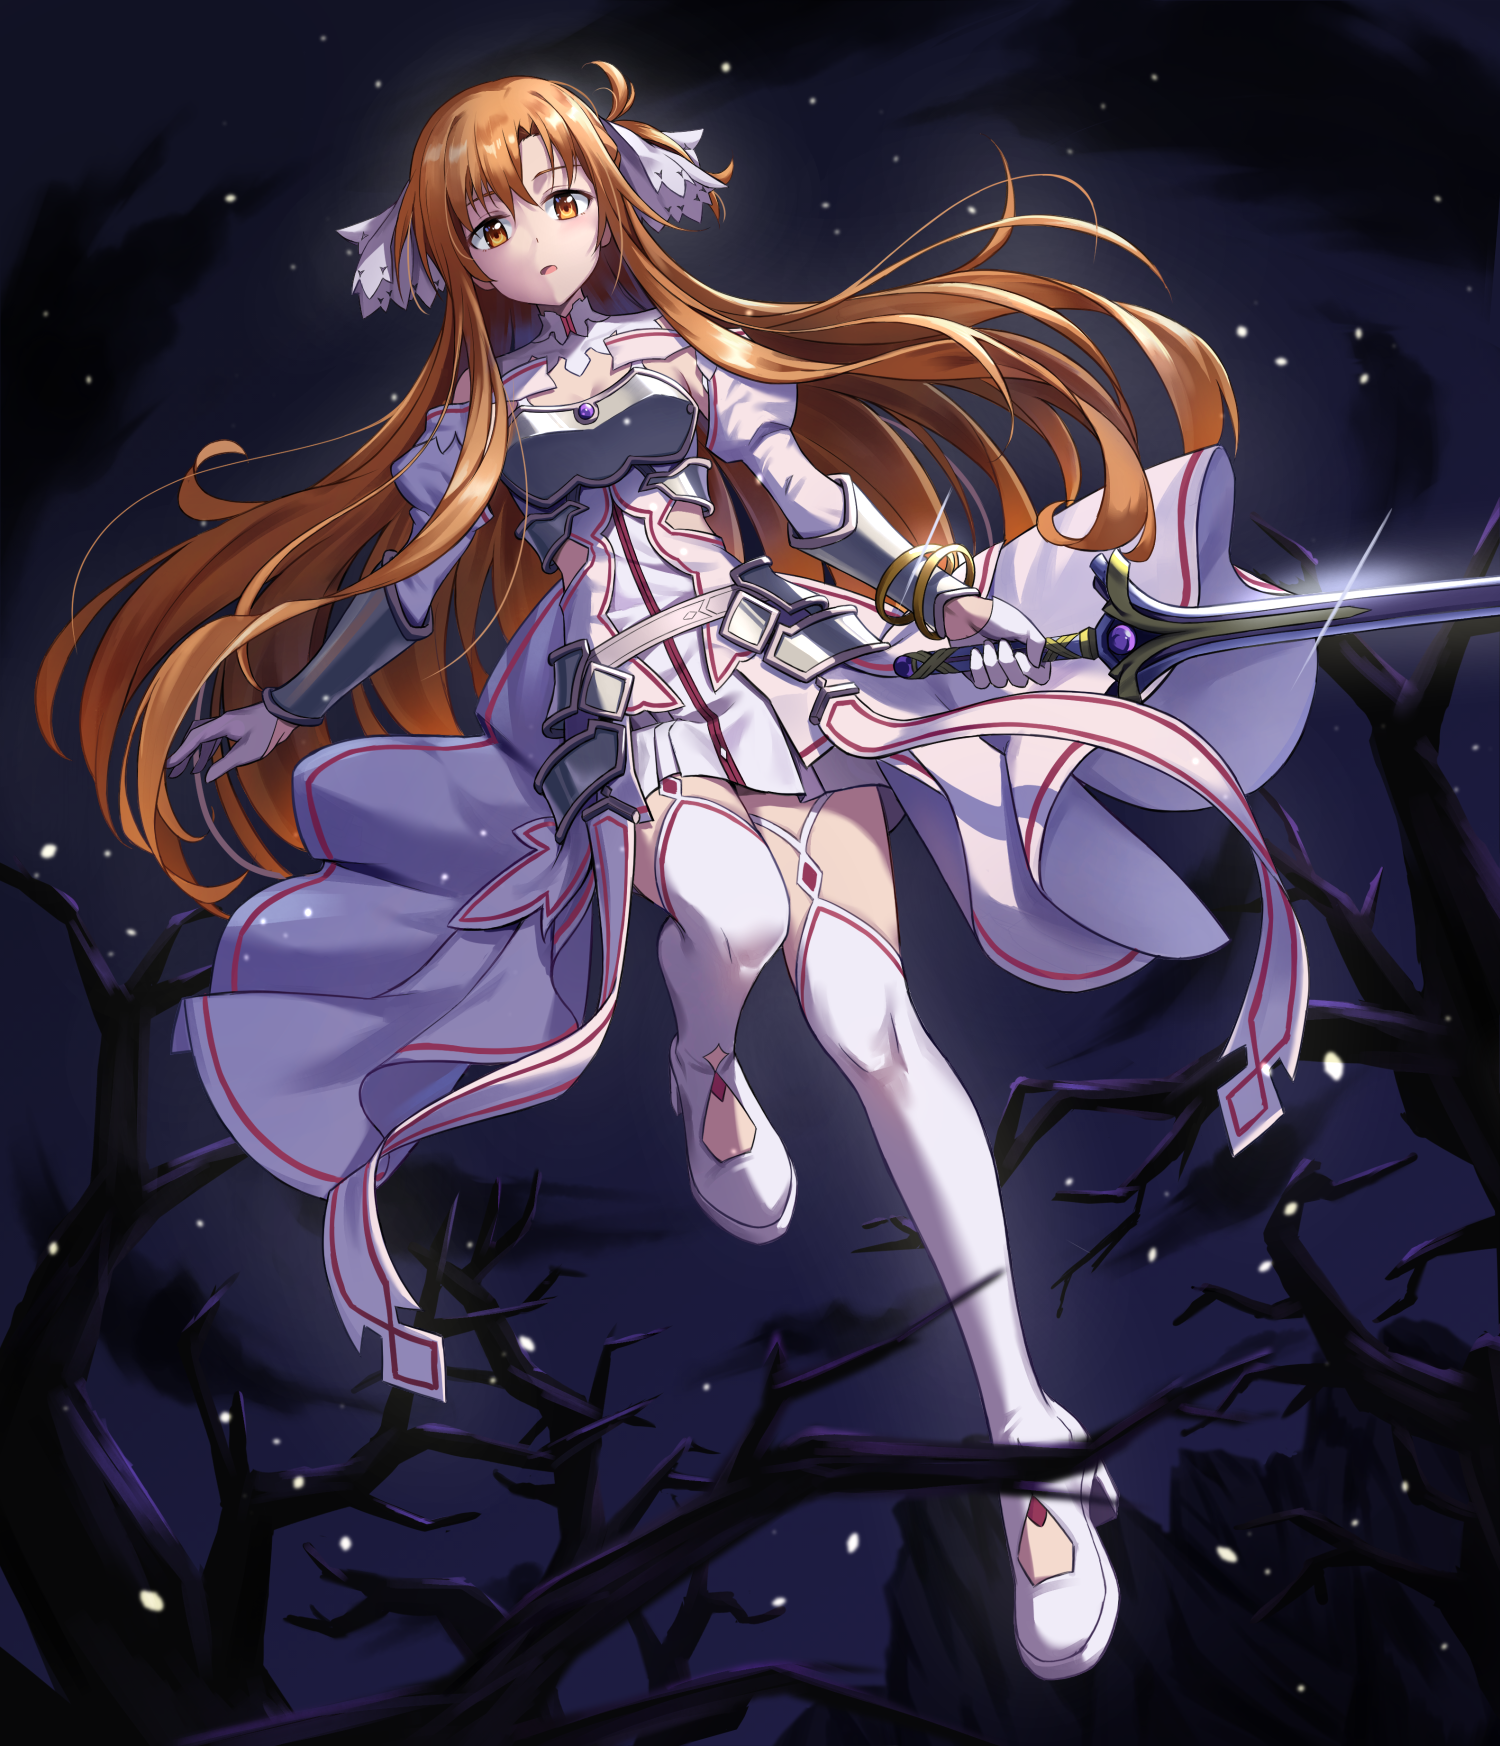 Pin by Joud on Asuna Yuuki (With images) Sword art